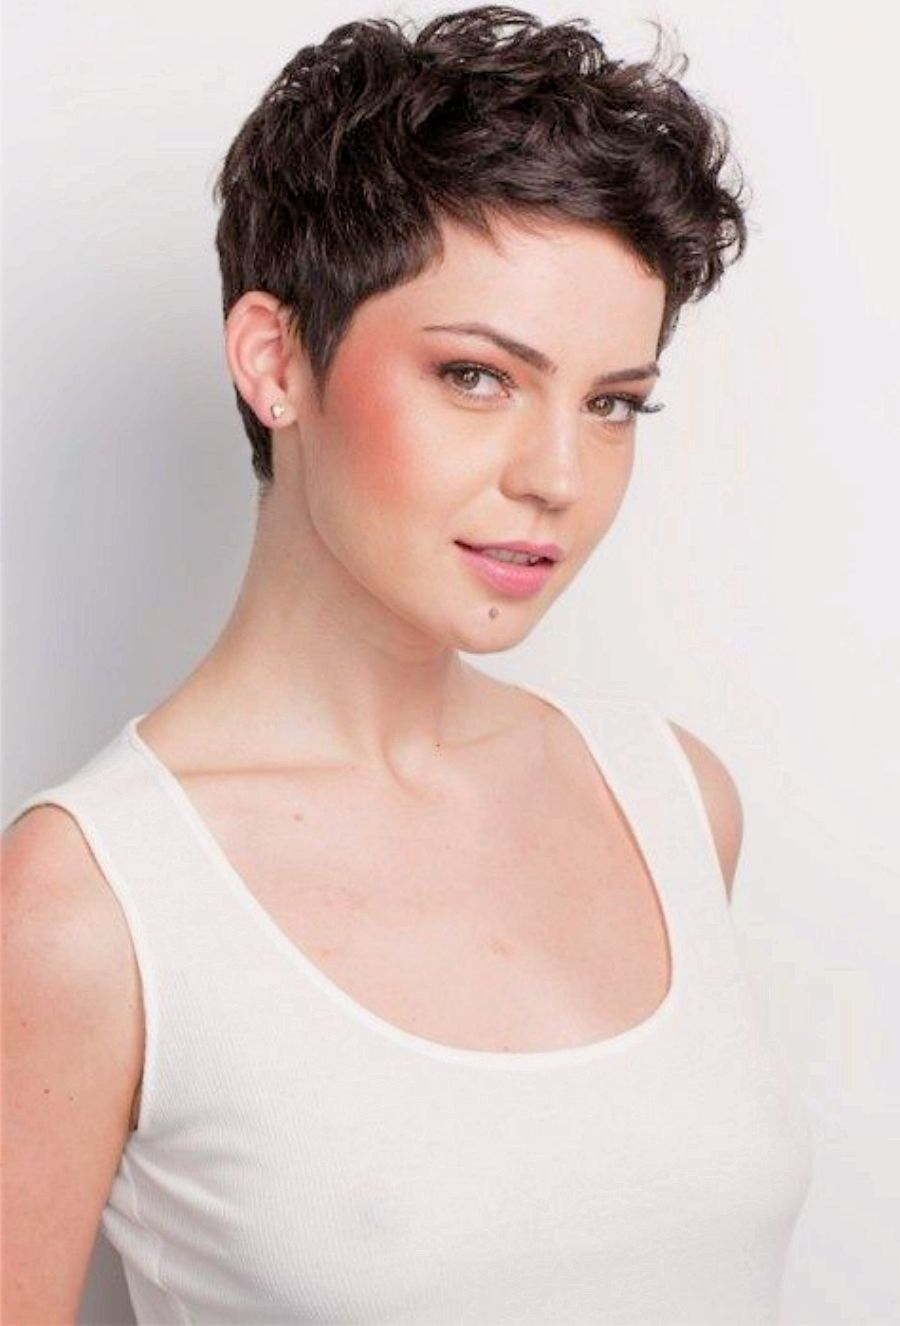 35 charming curly pixie hairstyles for women | haircut